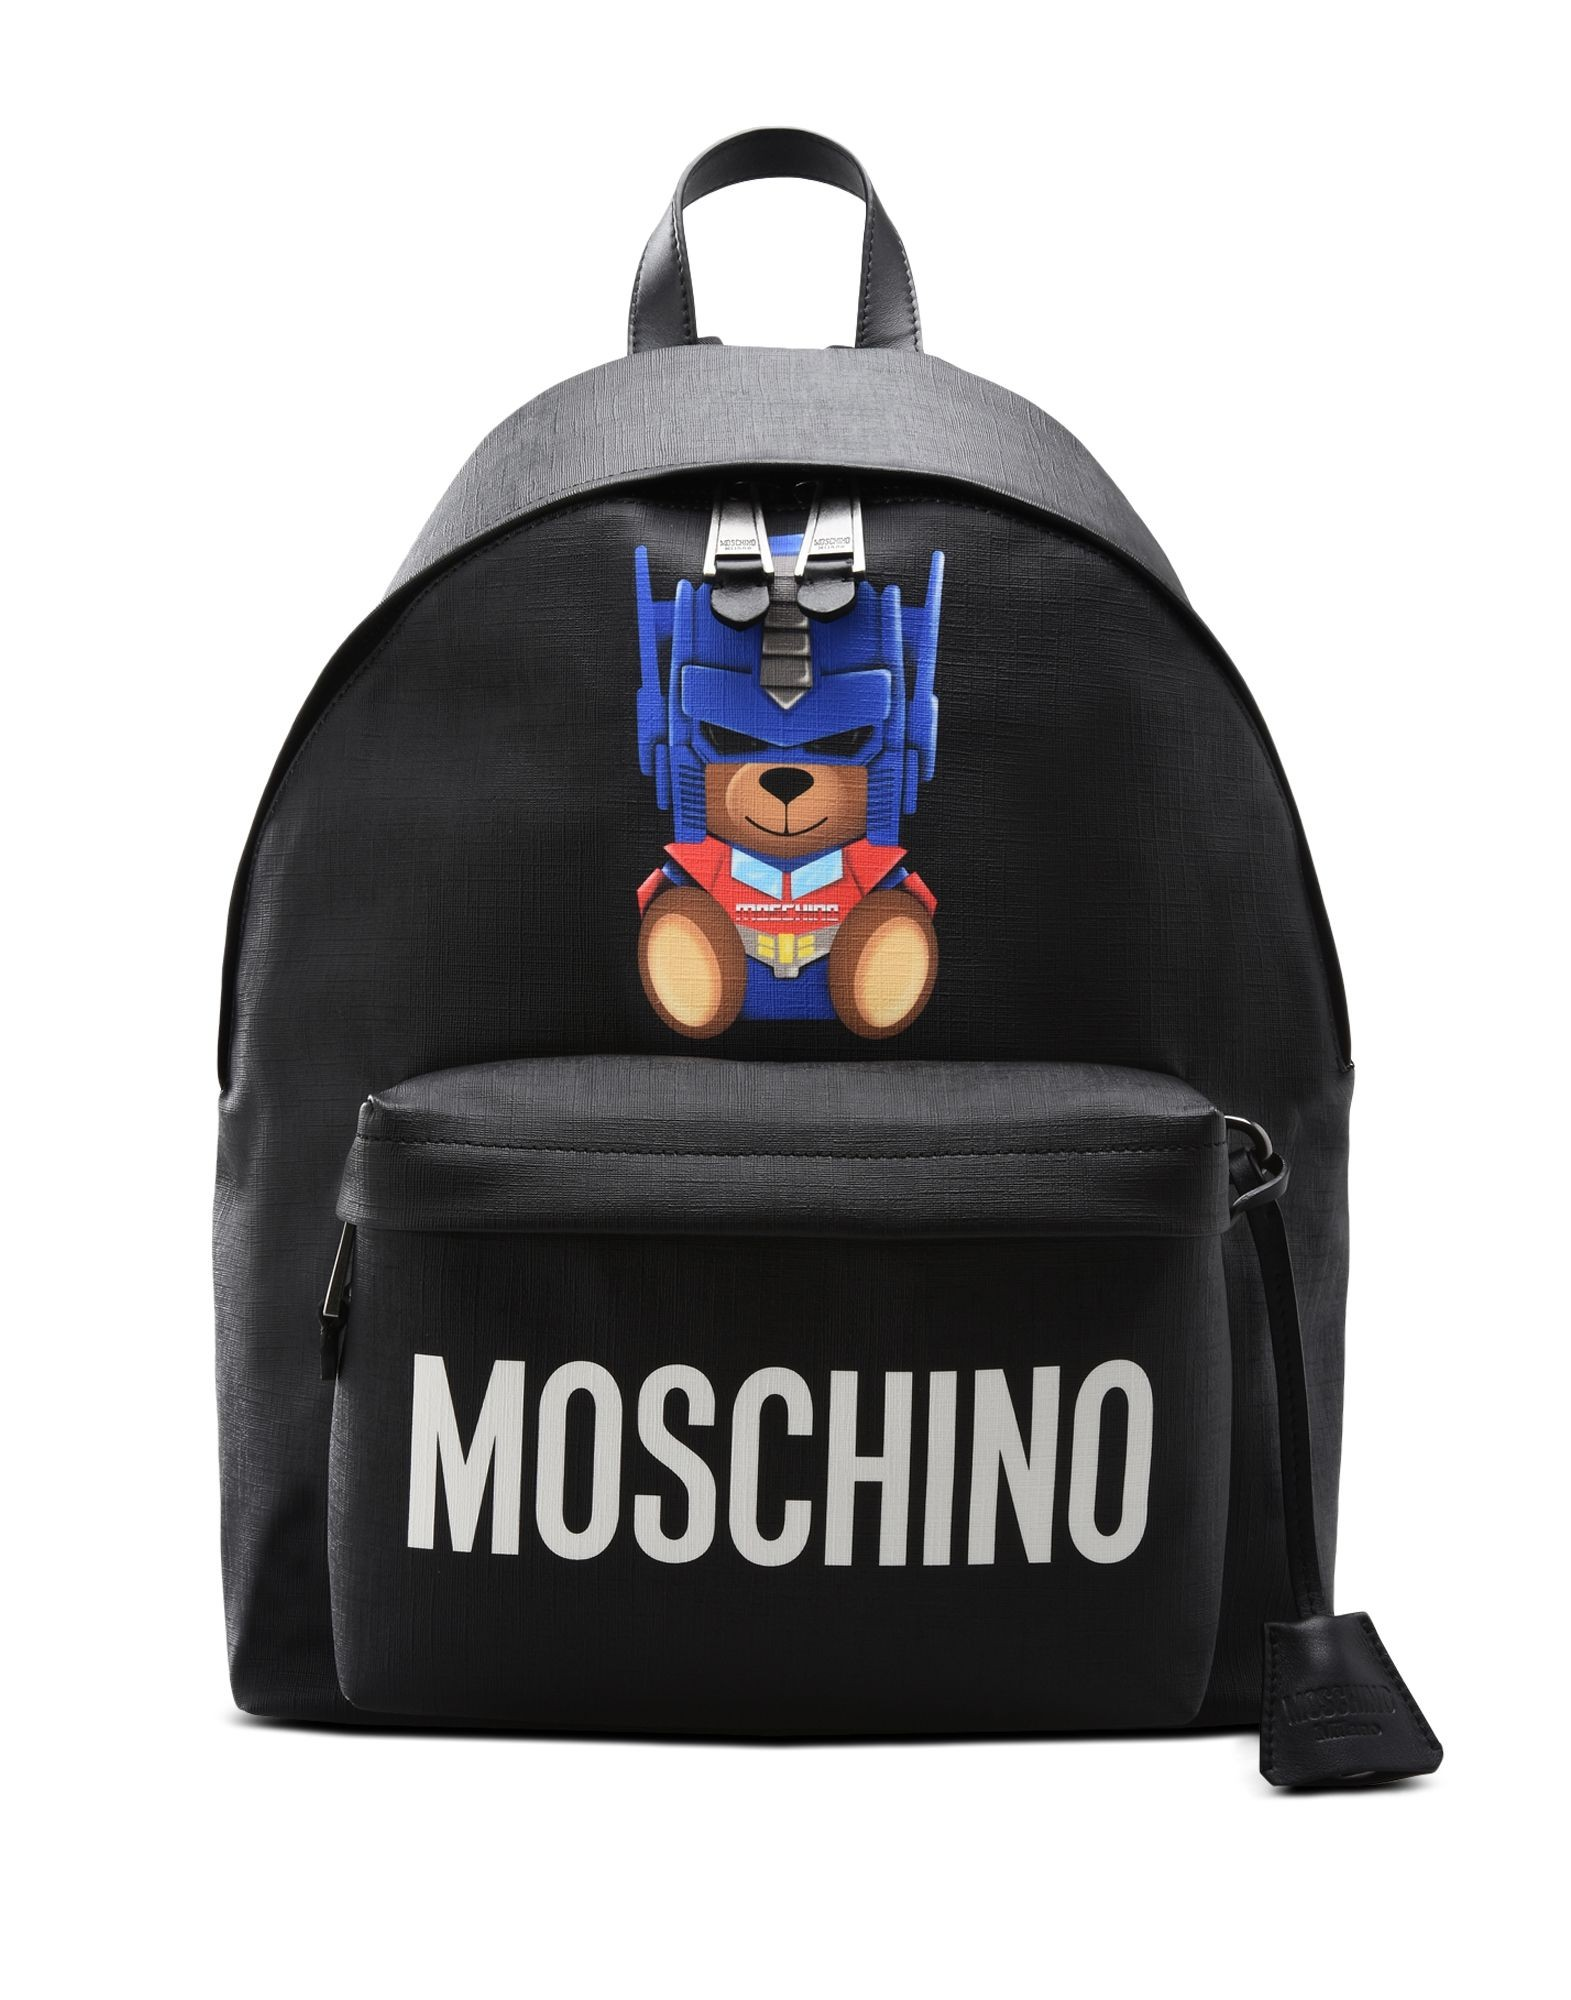 Transformers News: Moschino Transformers Ready to Bear FW17 Collection